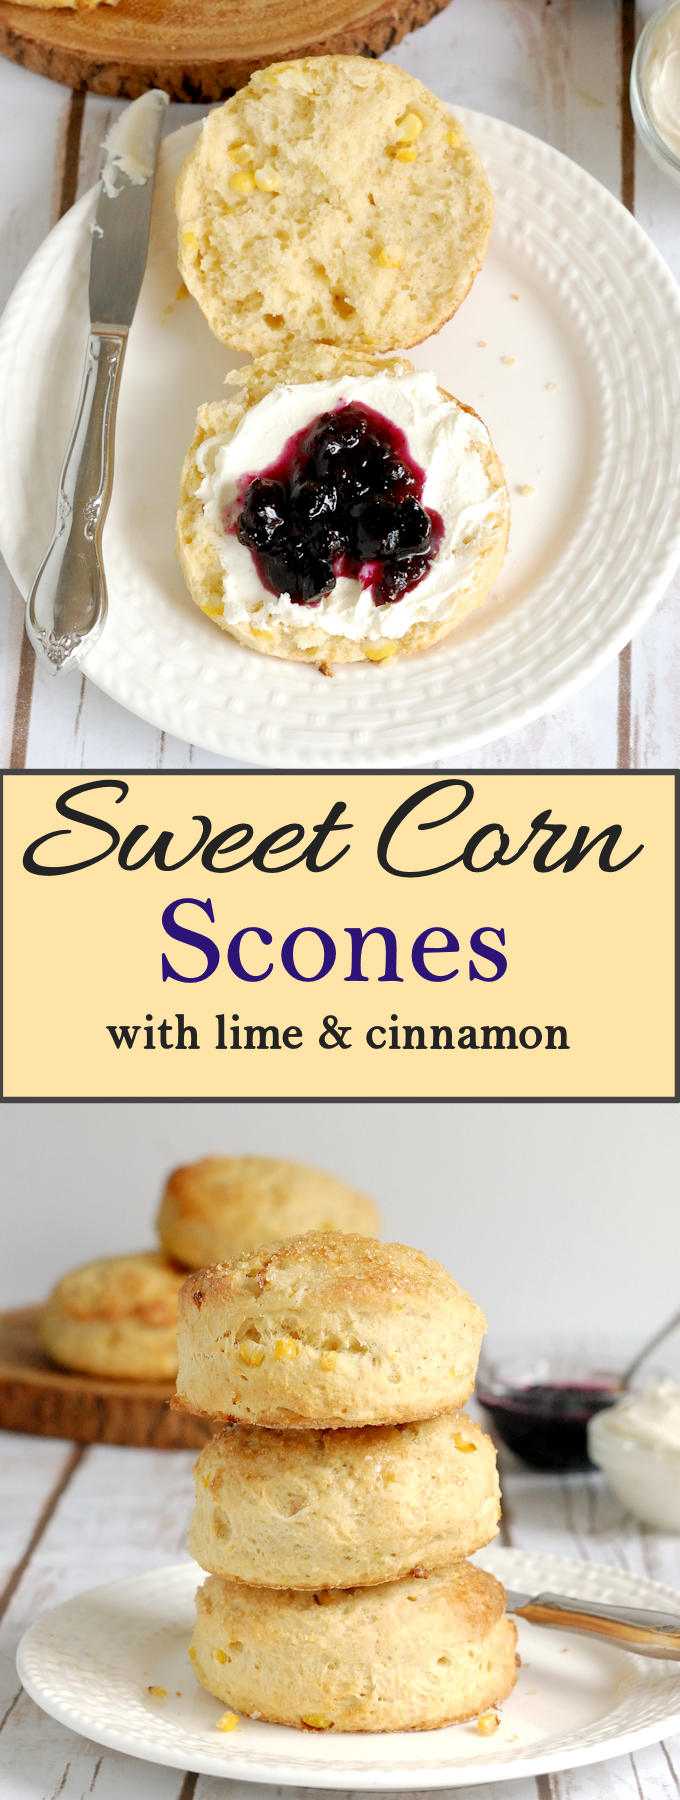 Make fresh corn scones with lime and cinnamon with summer corn for a special treat. Super easy recipe with lots of how to photos.